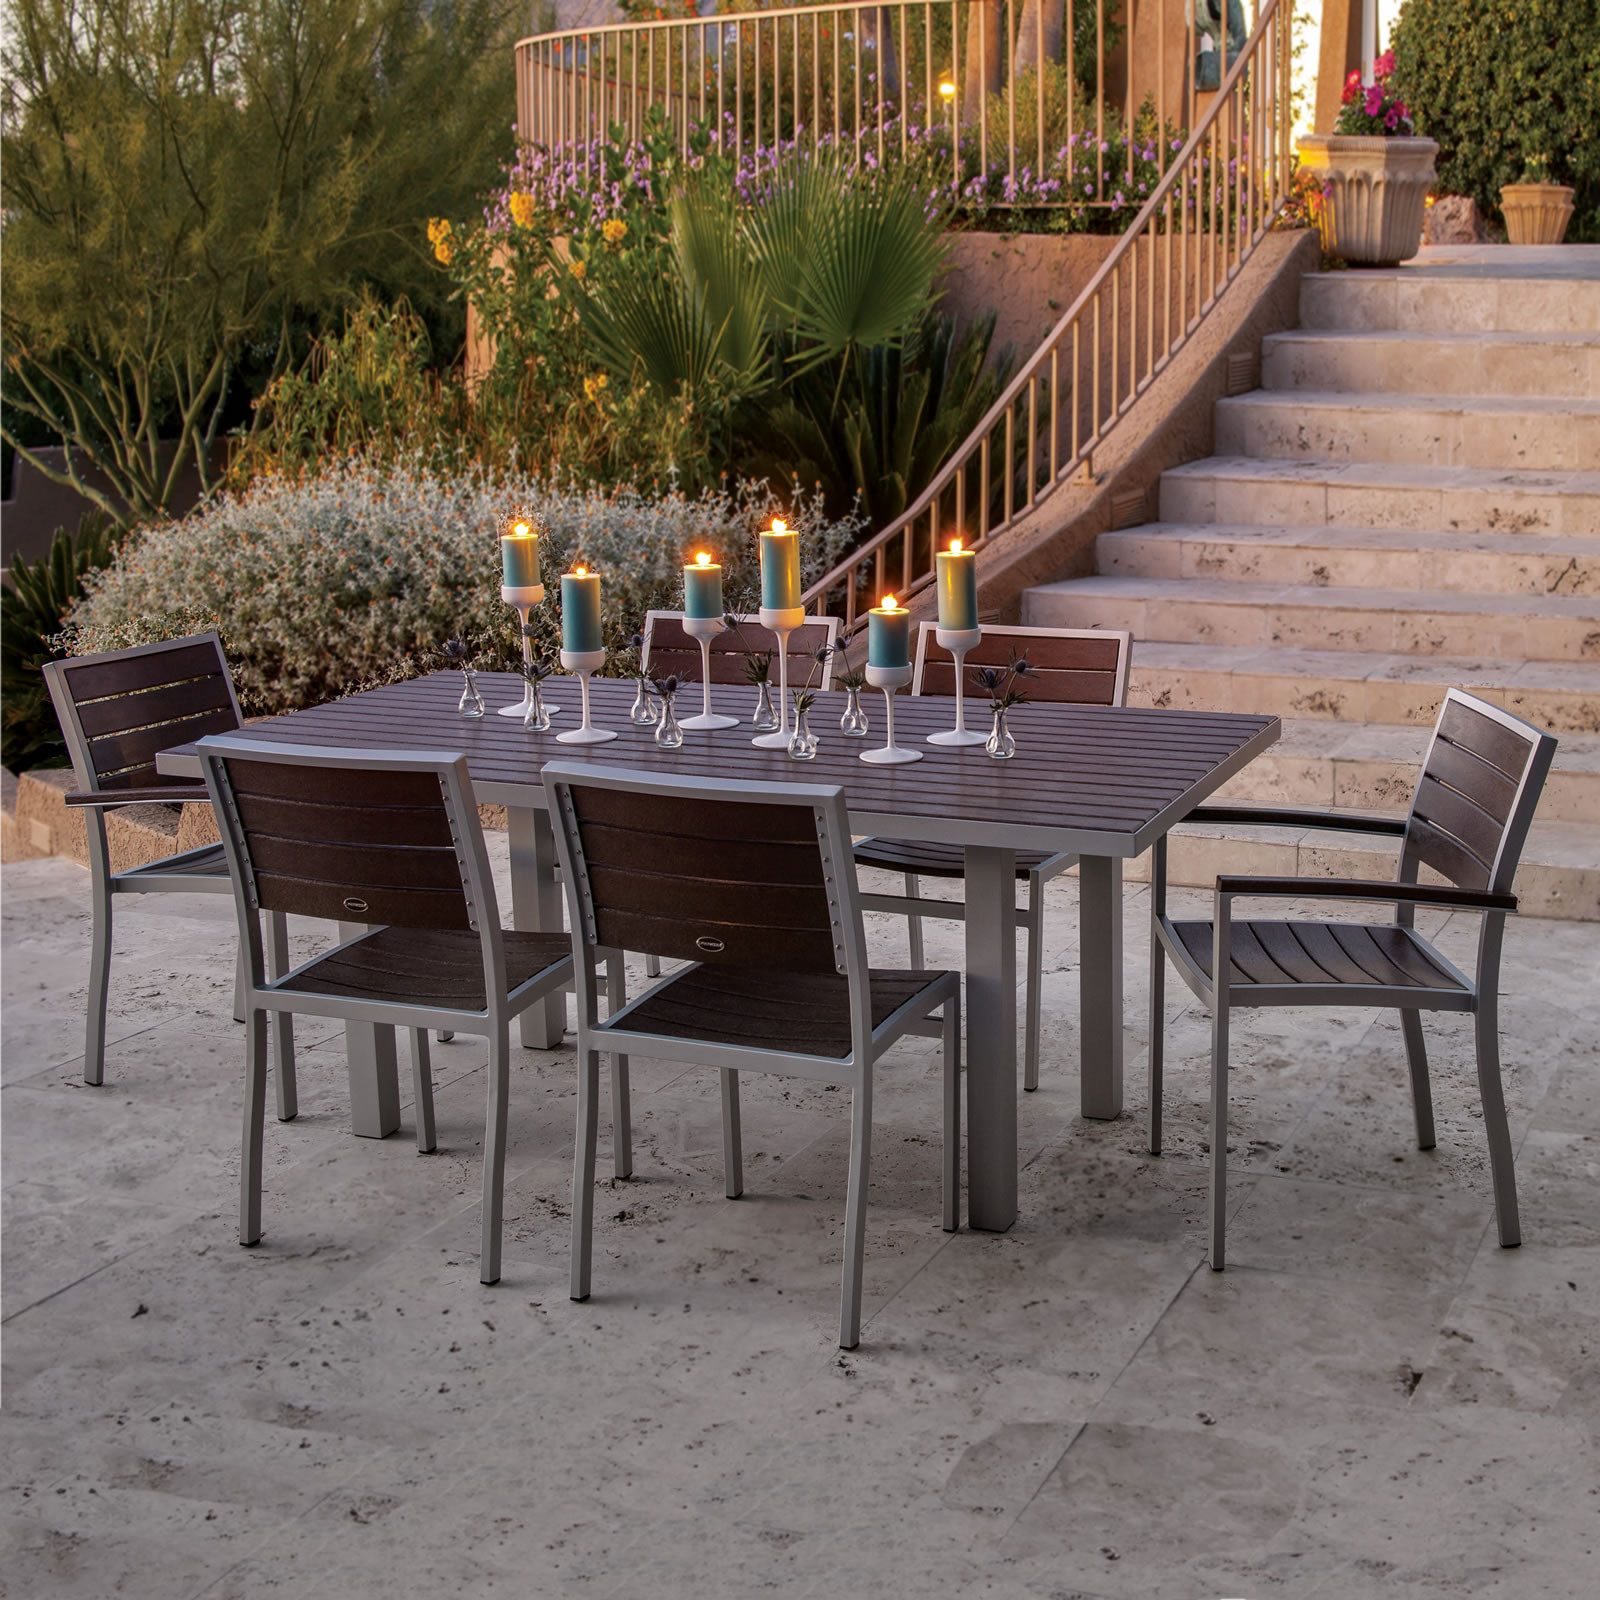 Polywood Outdoor Furniture Patio